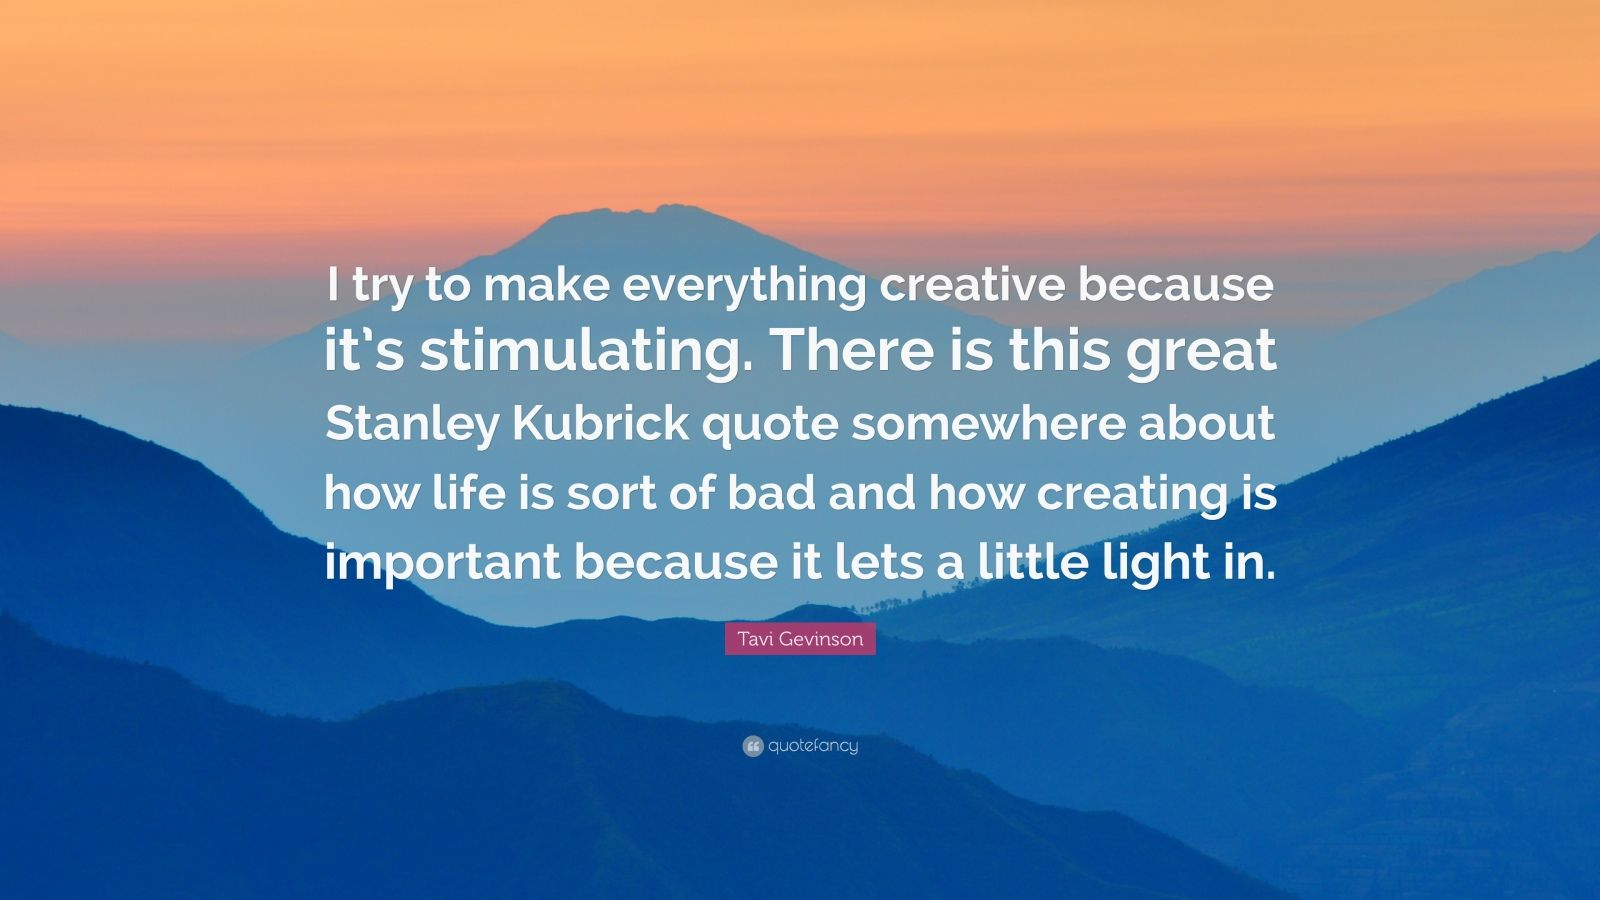 """Tavi Gevinson Quote: """"I try to make everything creative because it's stimulating. There is this great Stanley Kubrick quote somewhere about how life is sort of bad and how creating is important because it lets a little light in."""""""